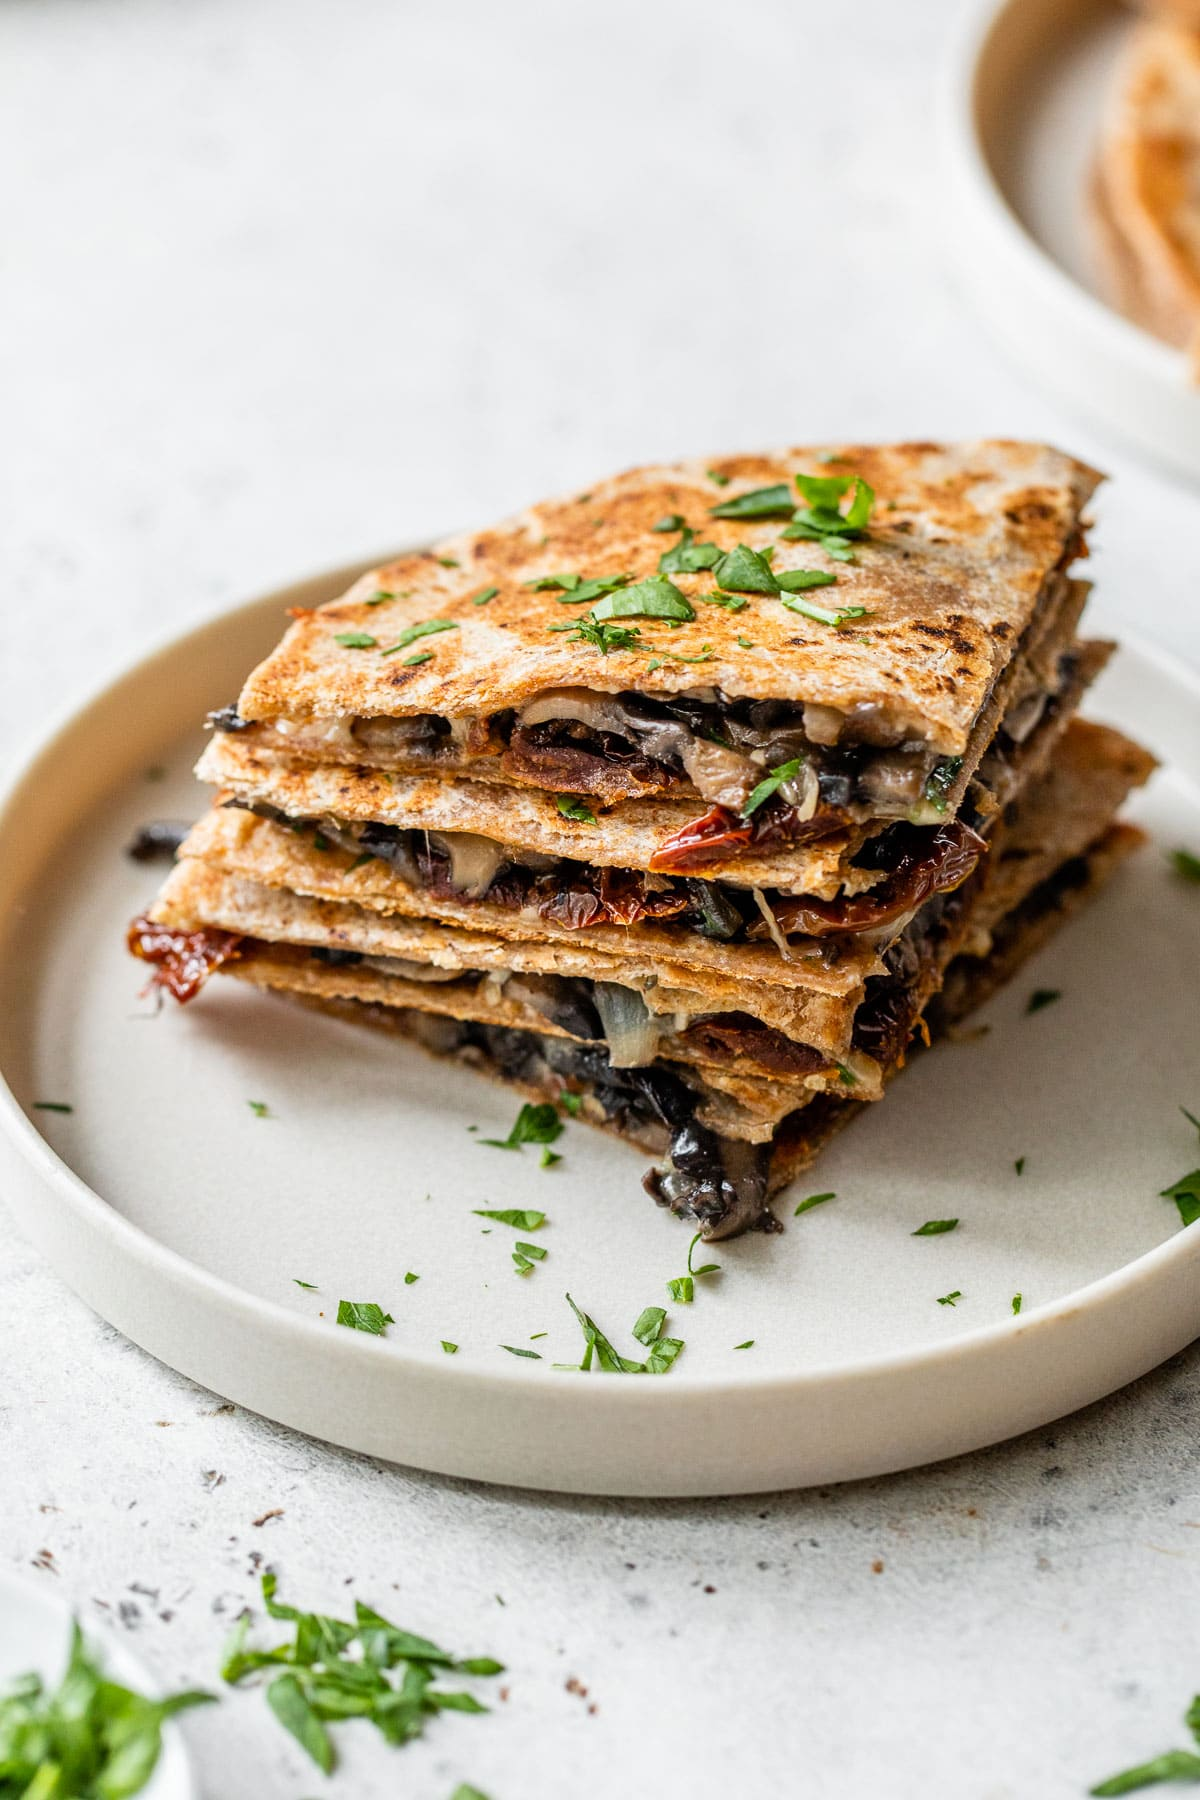 a stack of quesadillas wedges on a plate filled with mushrooms, cheese and tomatoes.